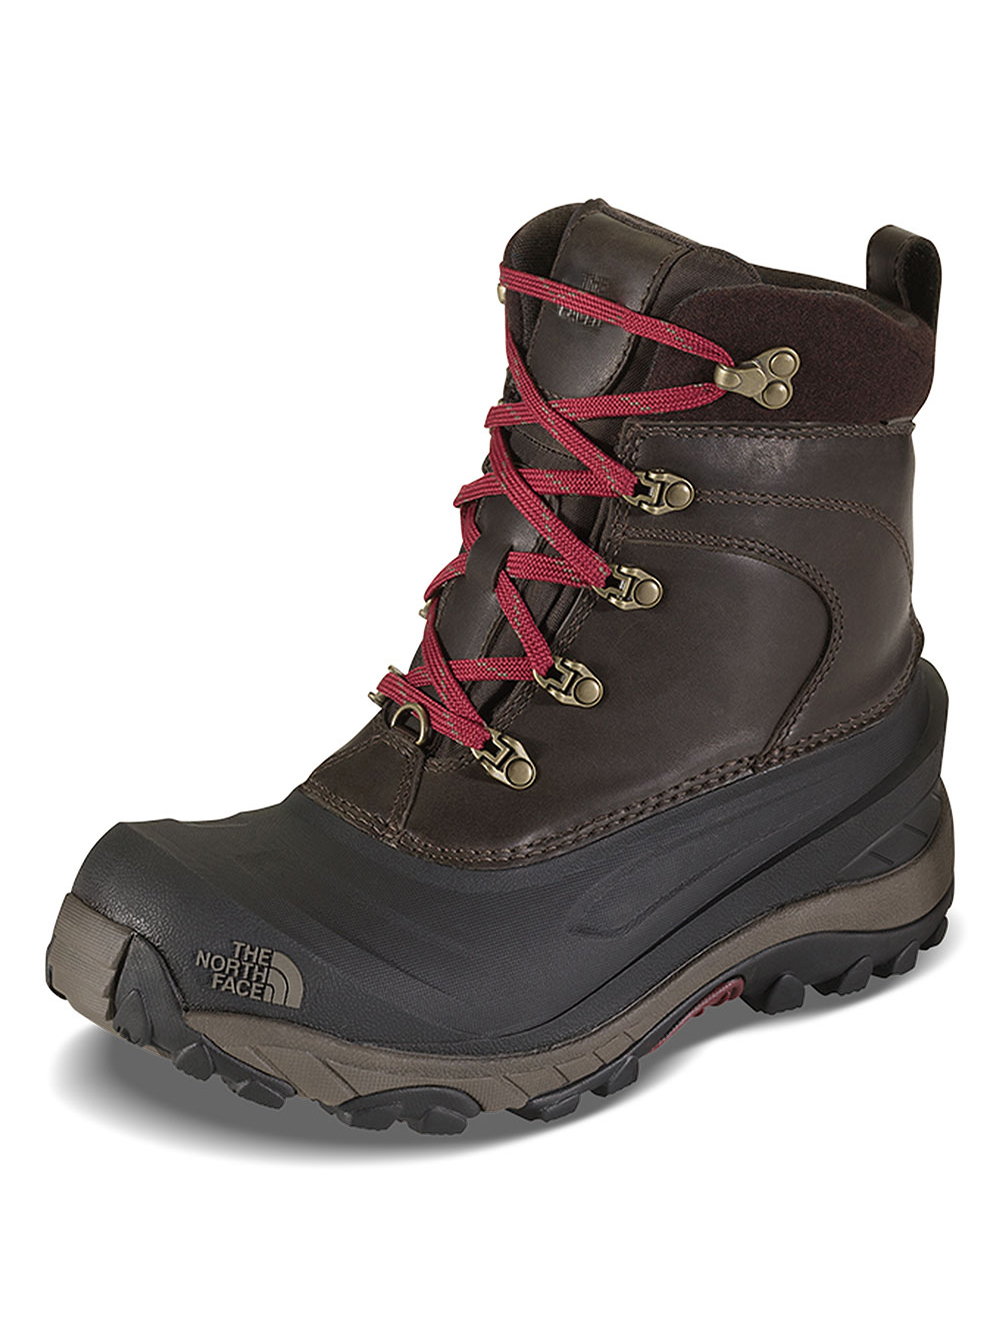 The North Face Men's Chilkat II Luxe Boots - coffee brown/shroom brown, 7 youth